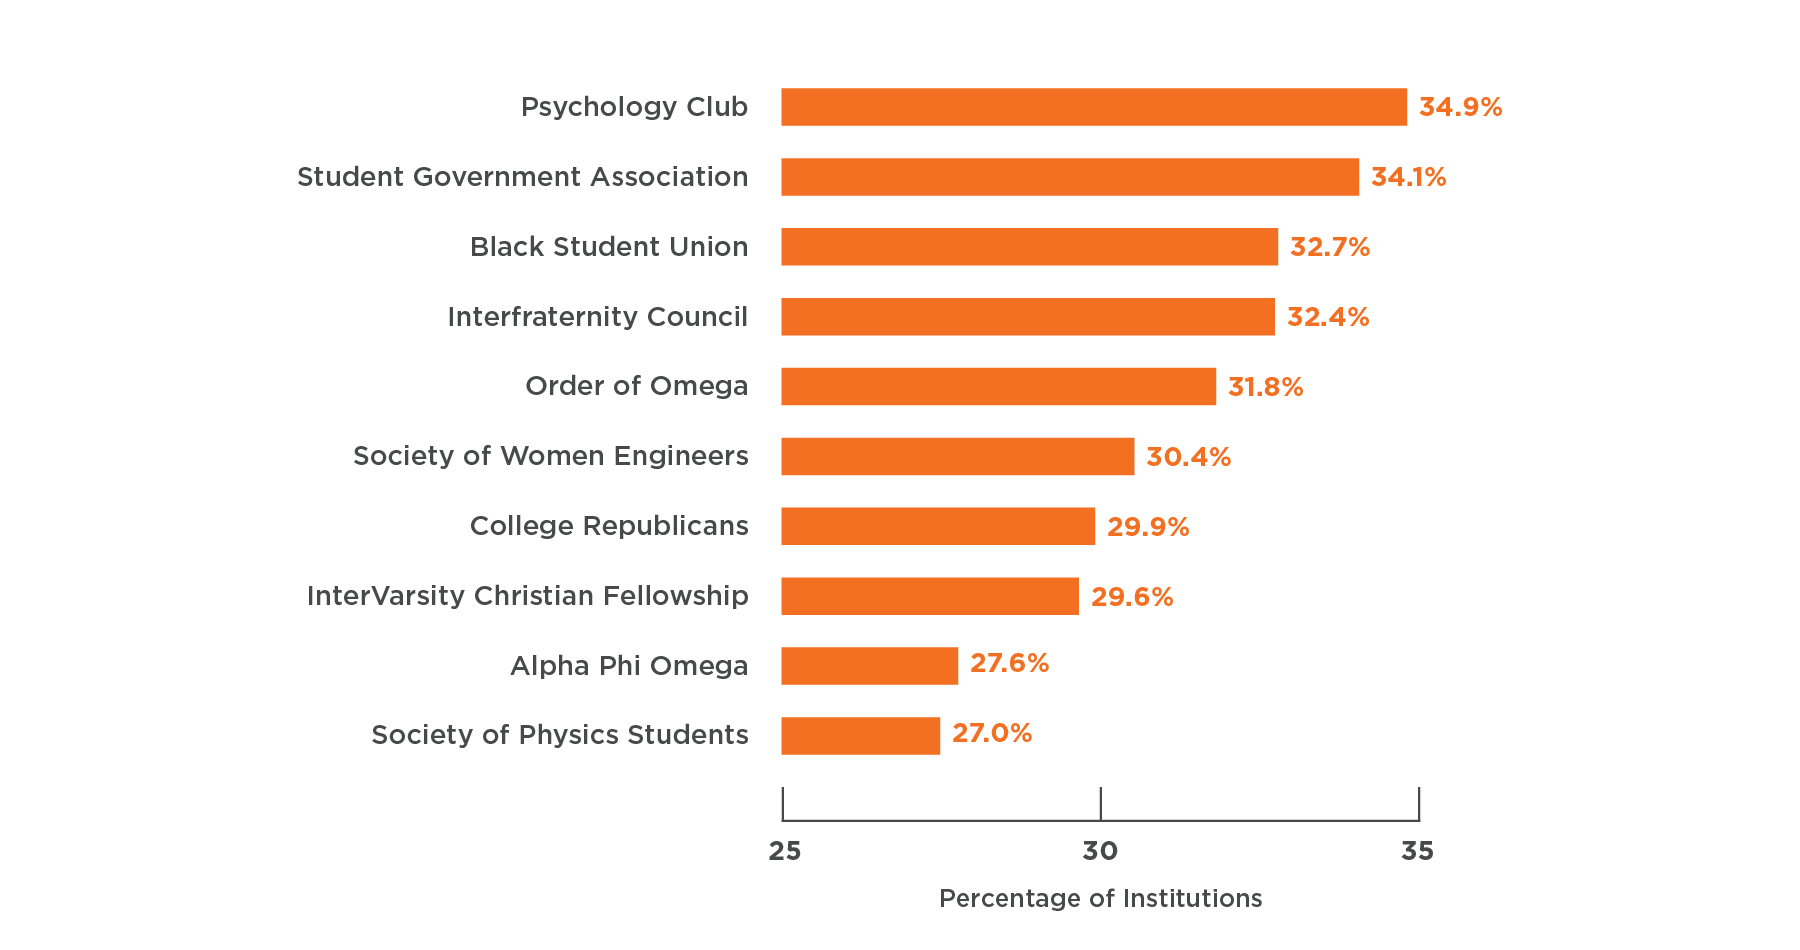 Graph showing the top 10 organizations by percentage of institutions